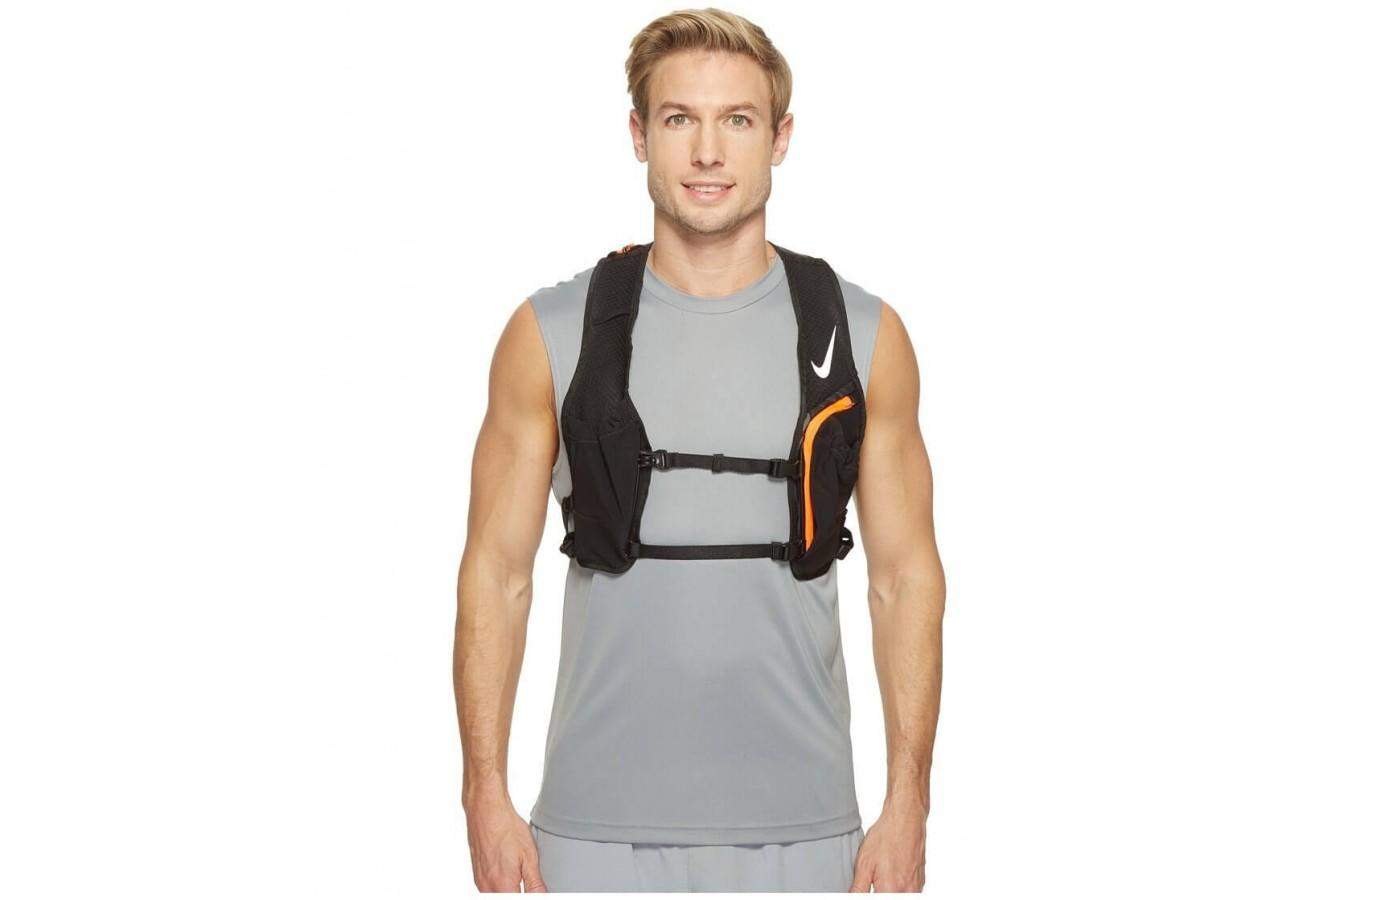 The Nike Hydration Race Vest can accommodate hydration bladders of up to 2L